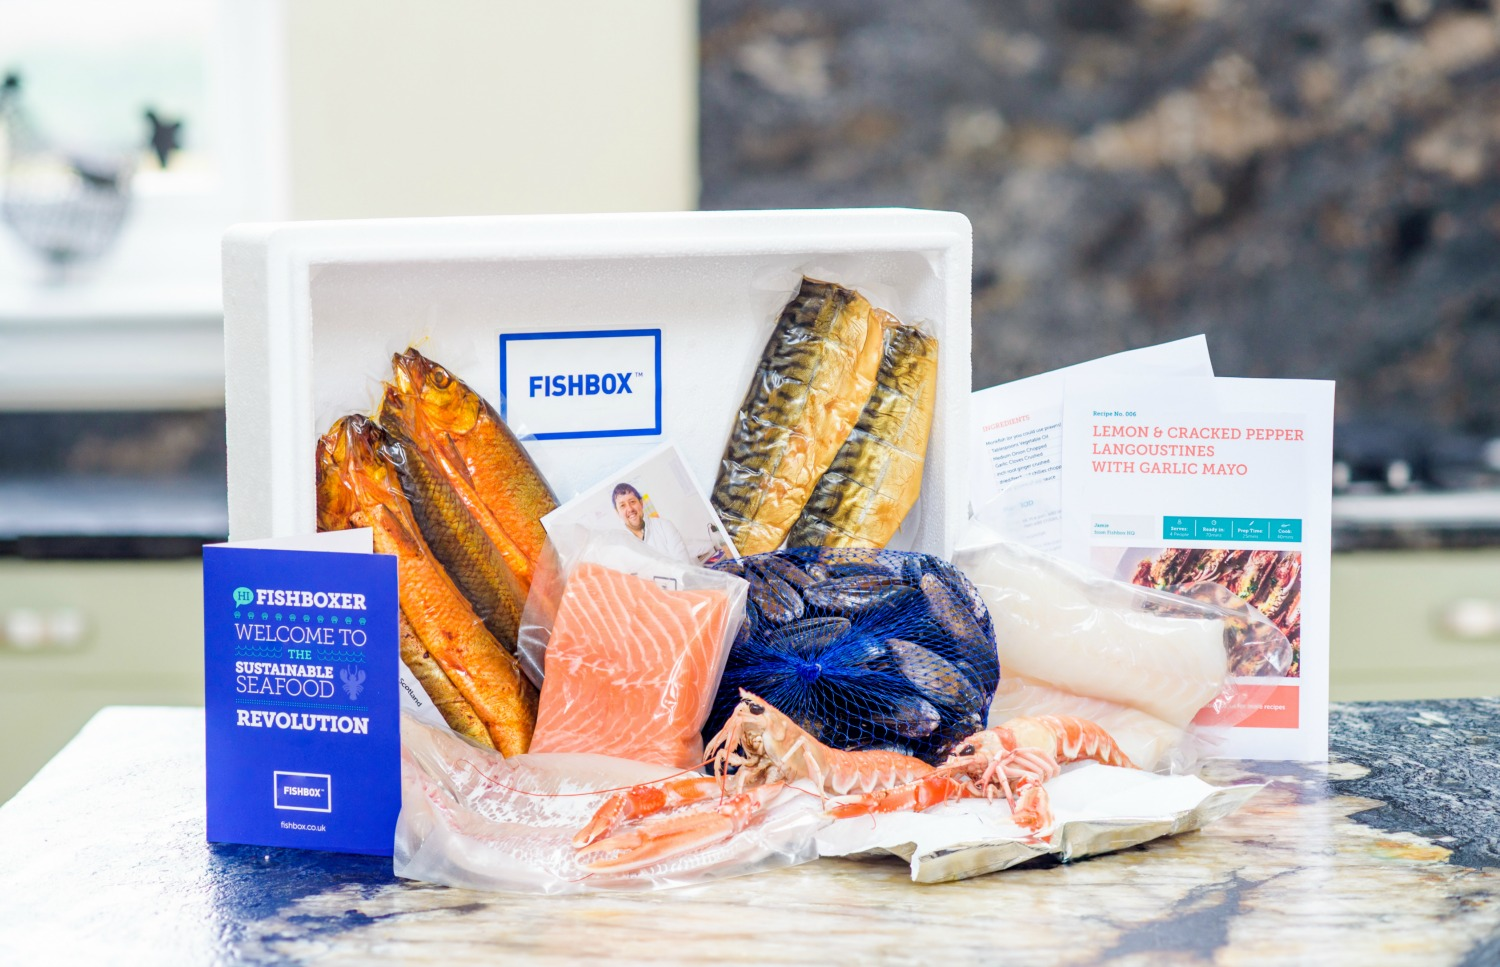 Our responsibly sourced Fishbox